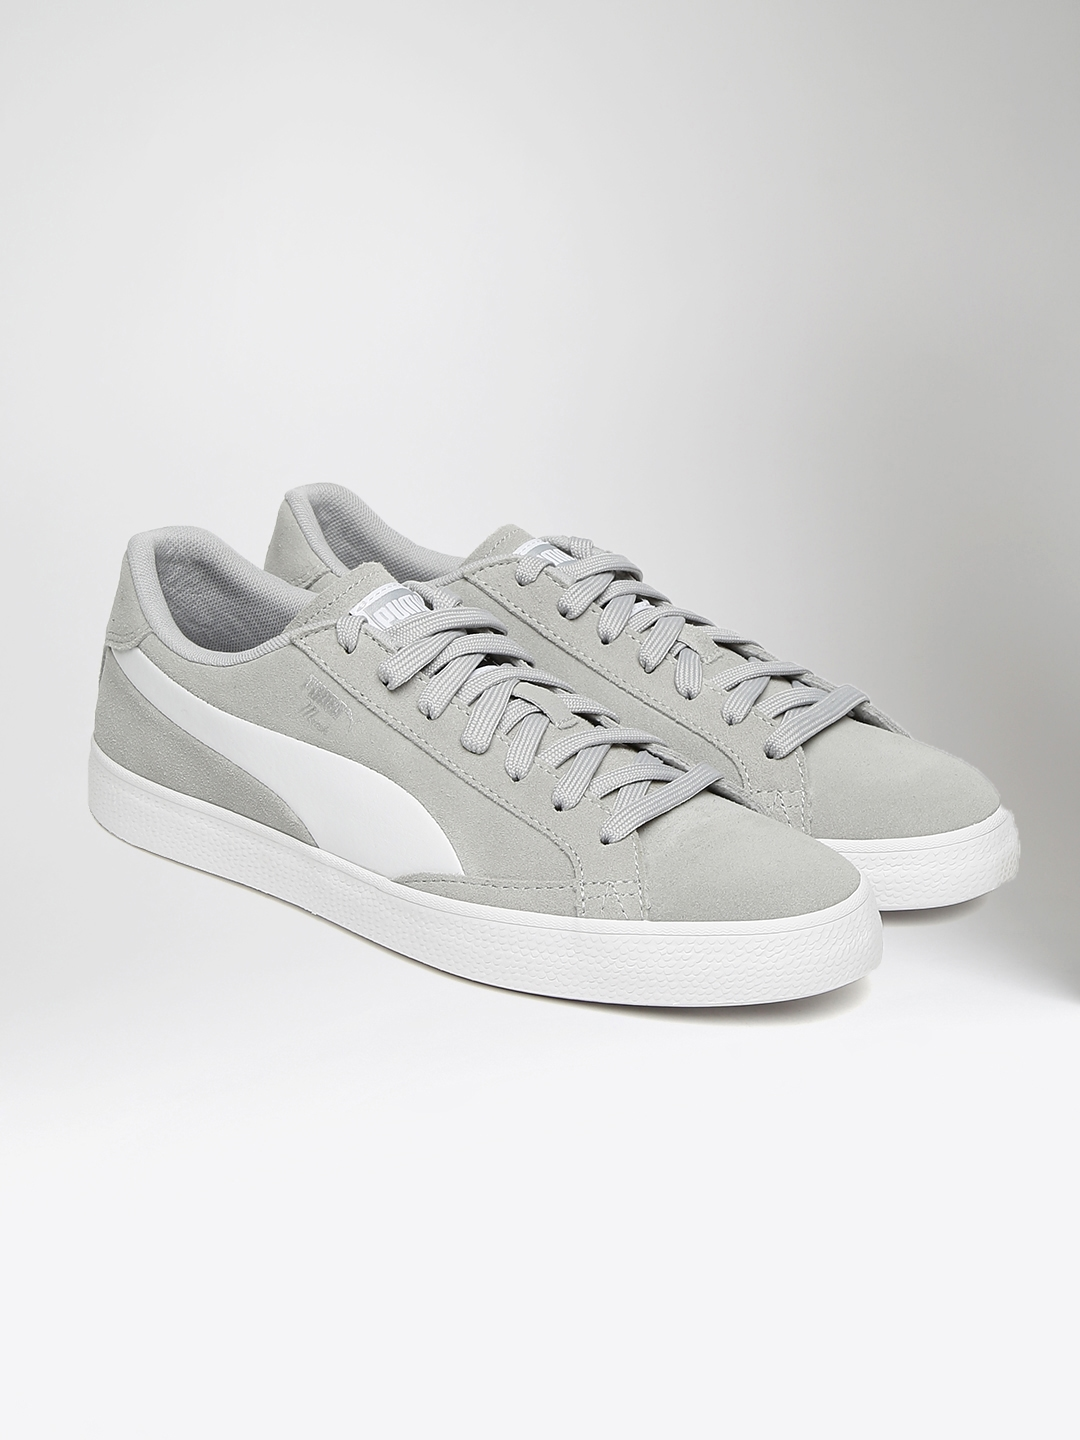 7fd6ac788f3 Buy Puma Men Grey   White Match Vulc 2 Sneakers - Casual Shoes for ...